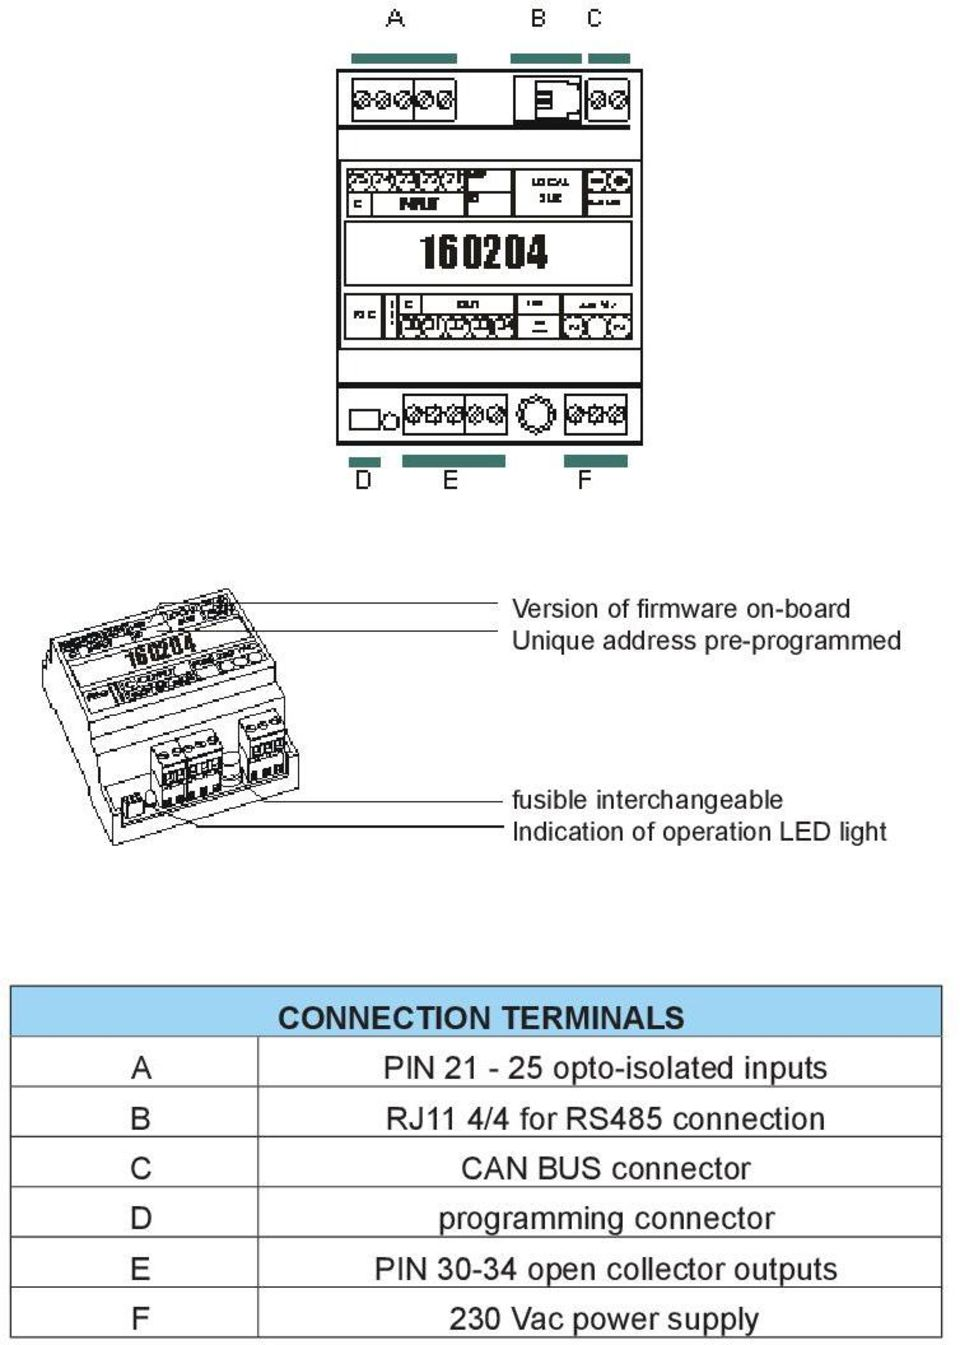 TERMINALS PIN 21-25 opto-isolated inputs RJ11 4/4 for RS485 connection CAN